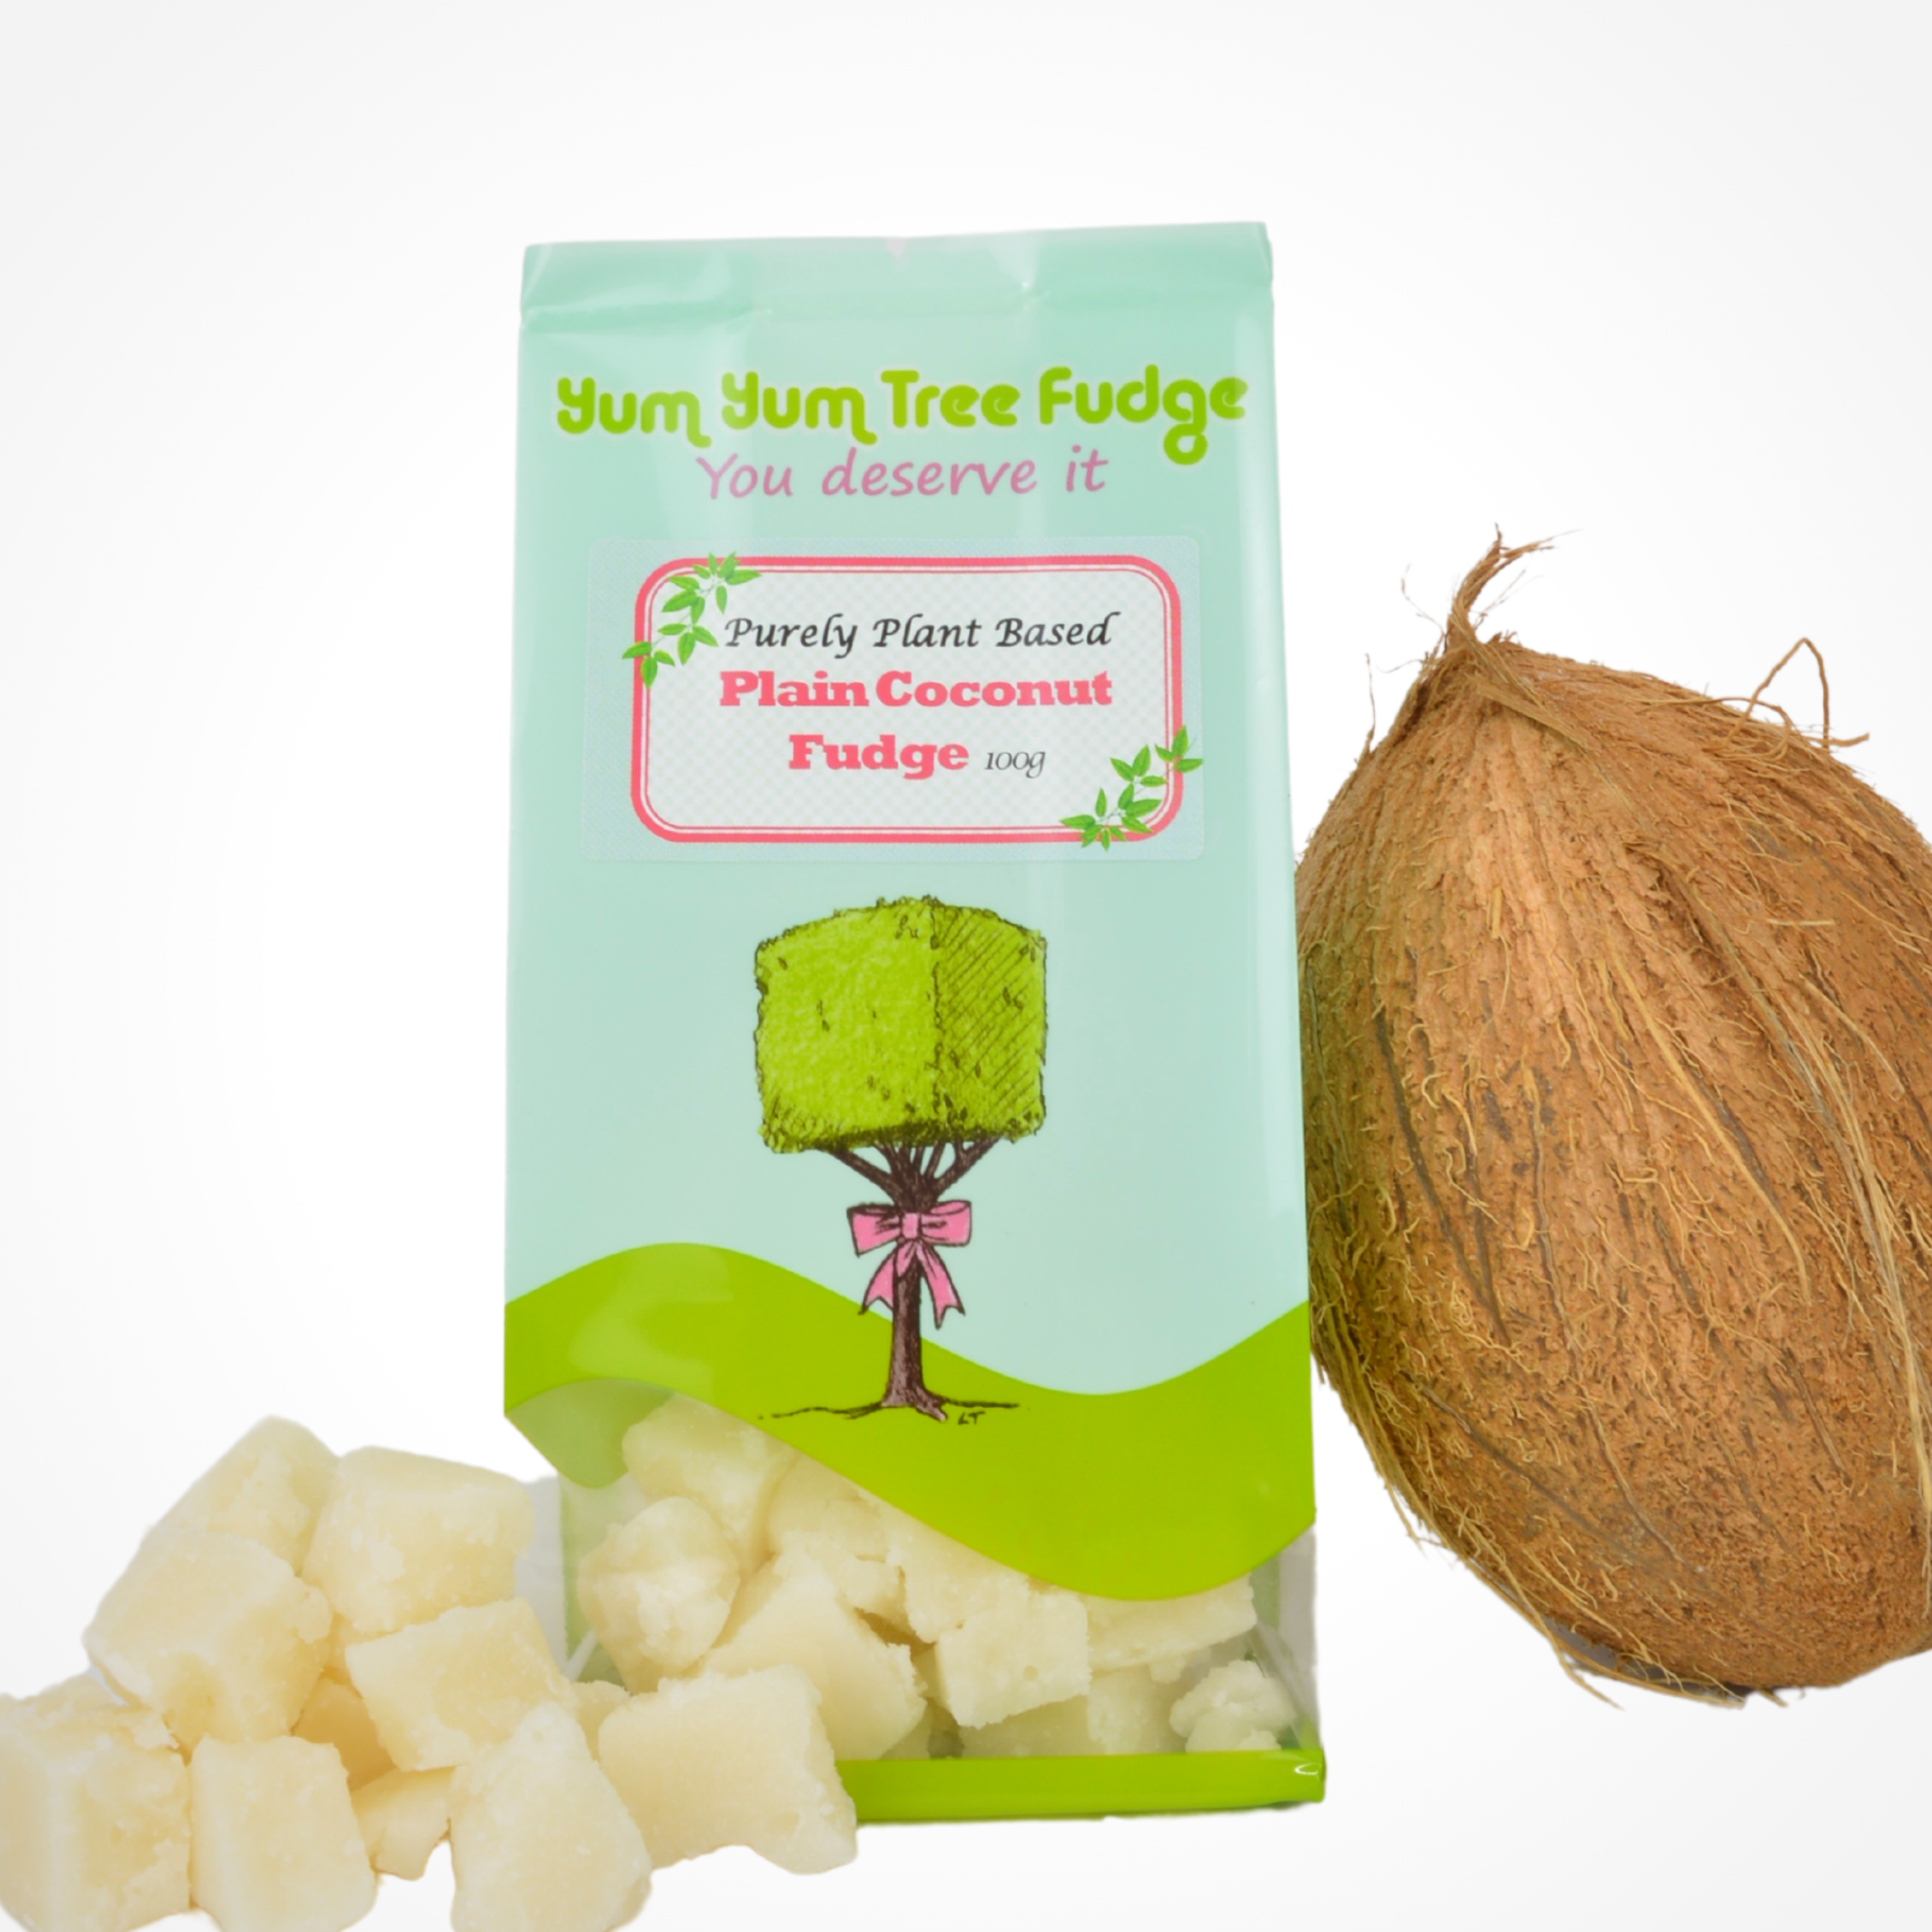 Purely Plant  Based Plain Coconut Fudge by Yum Yum Tree Fudge